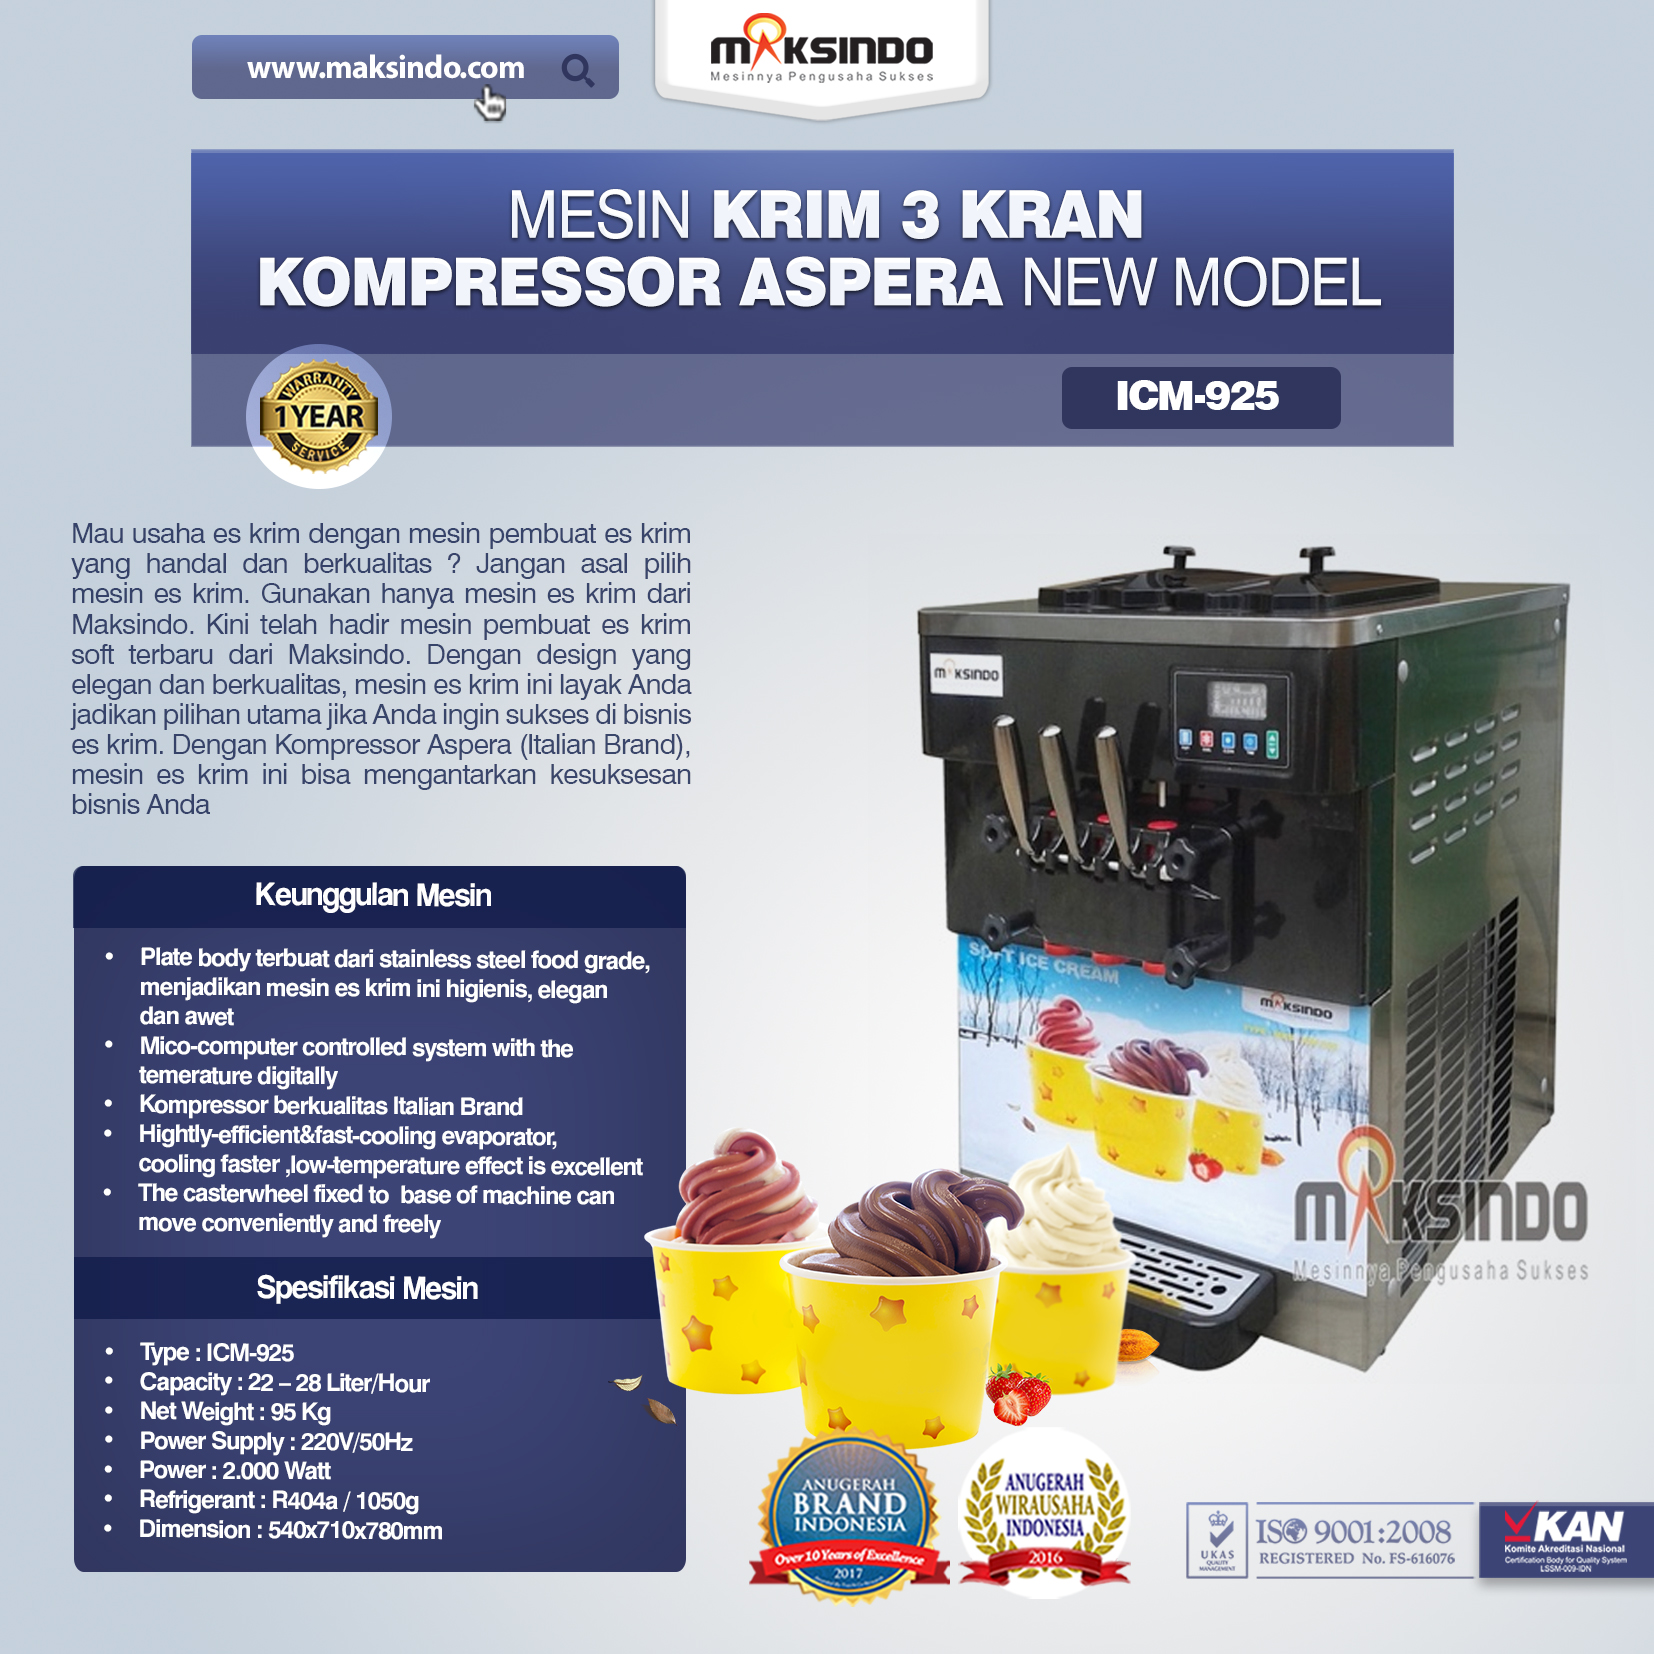 Mesin Krim 3 Kran Kompressor Aspera NEW MODEL ICM 9251